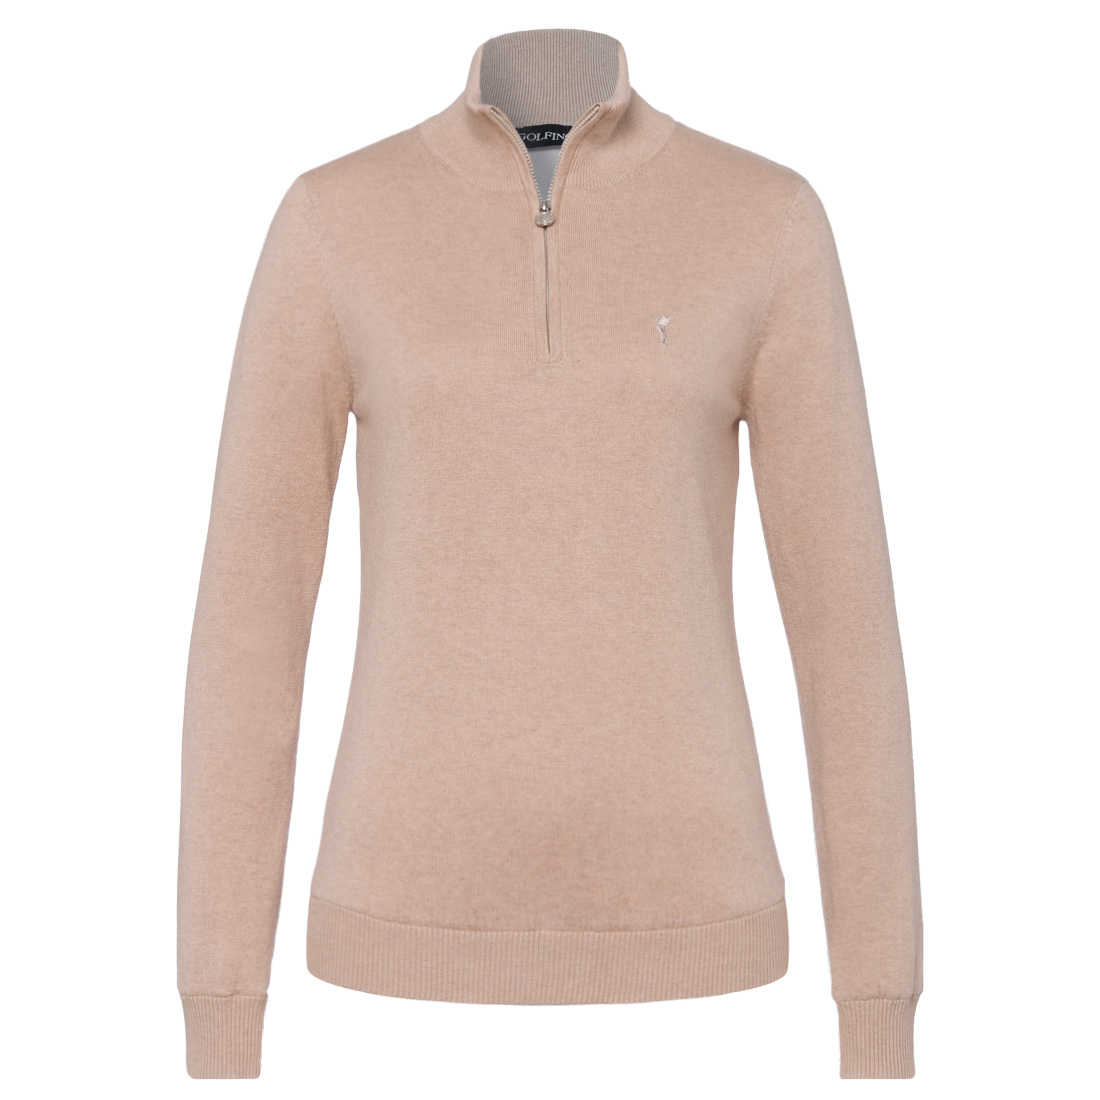 Soft cotton/cashmere ladies' Windstopper troyer